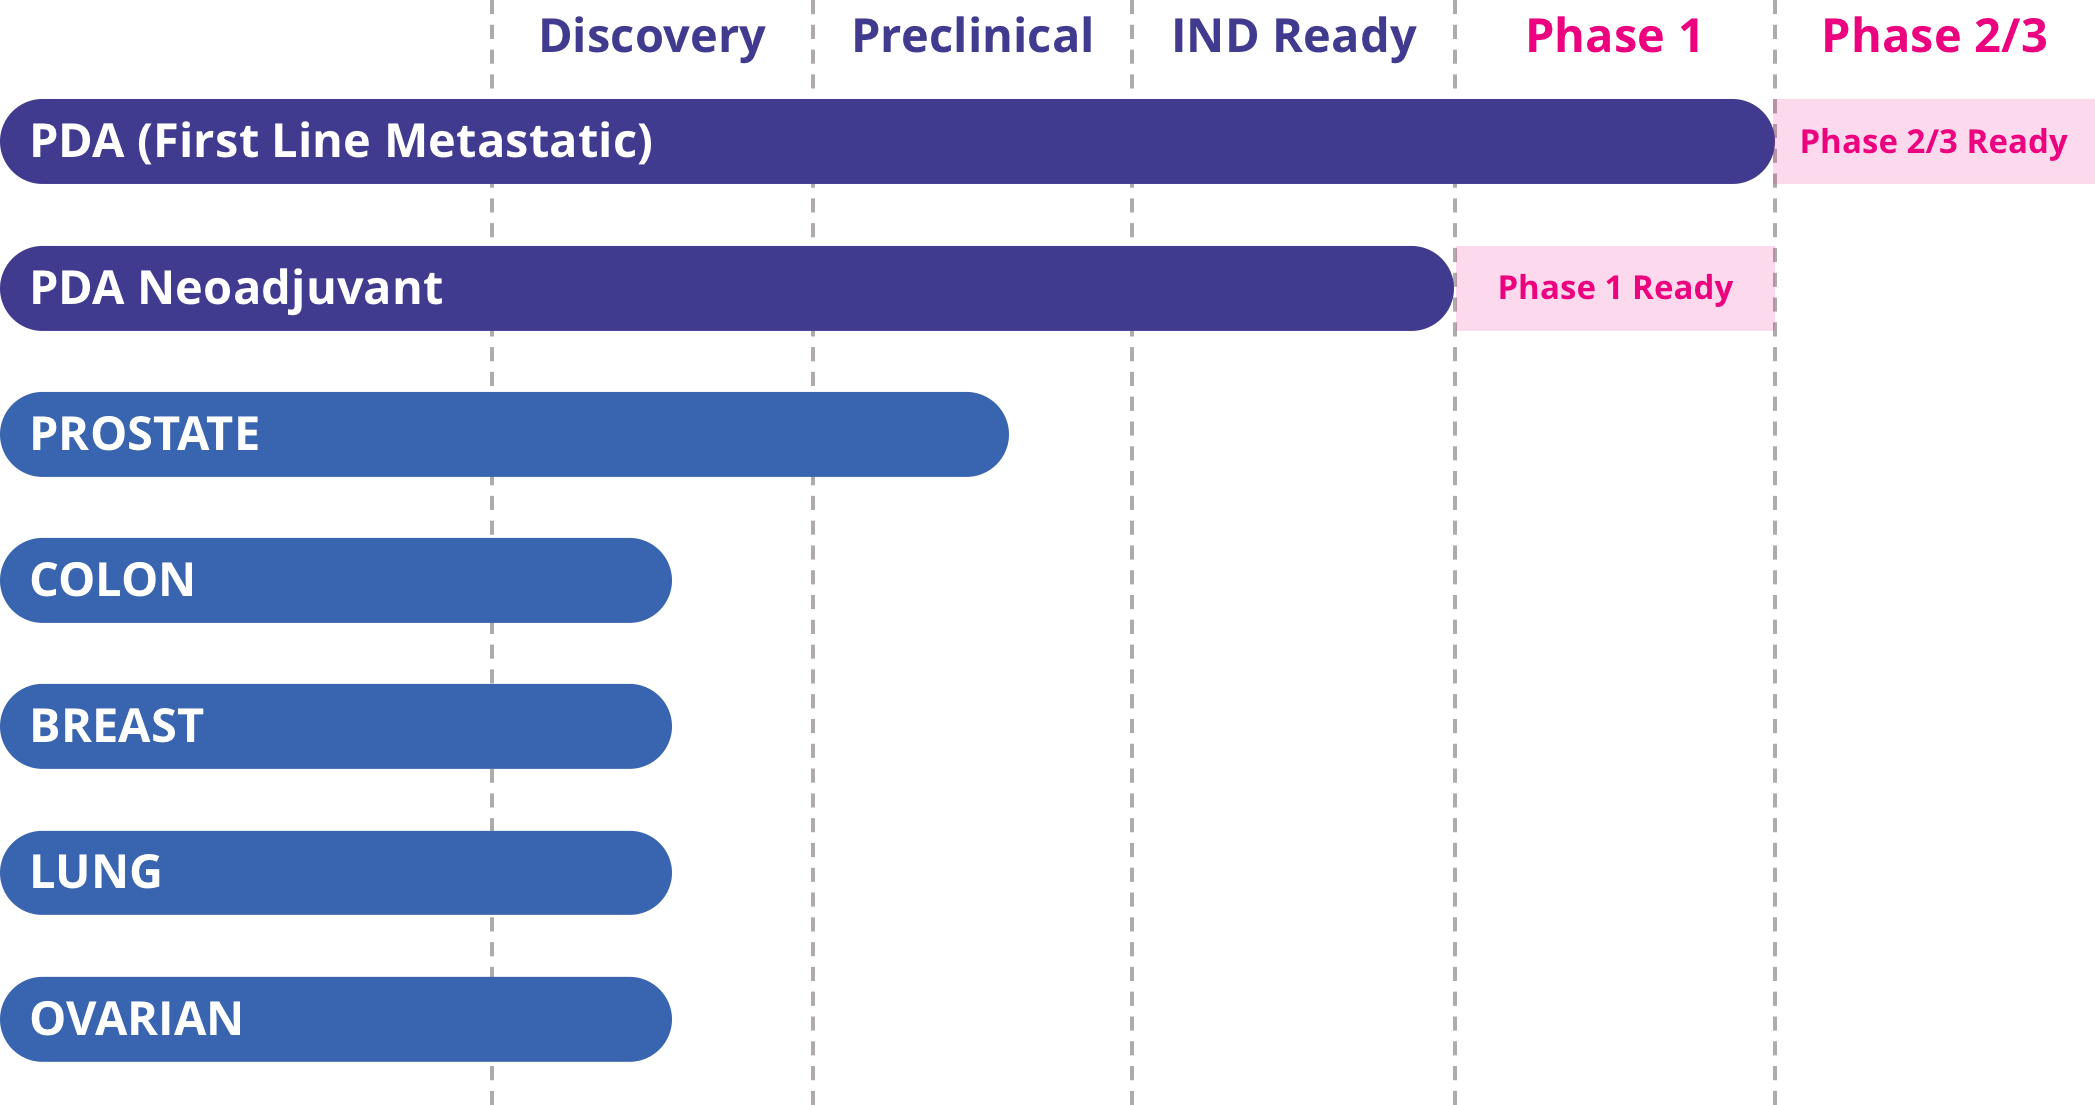 graph showing PDA (First Line Metastatic) as Phase2/3 ready, PDA Neoadjuvant as Phase 1 ready, Prostate as Preclinical, and Colon, Breast, Lung and Ovarian as Discovery phase